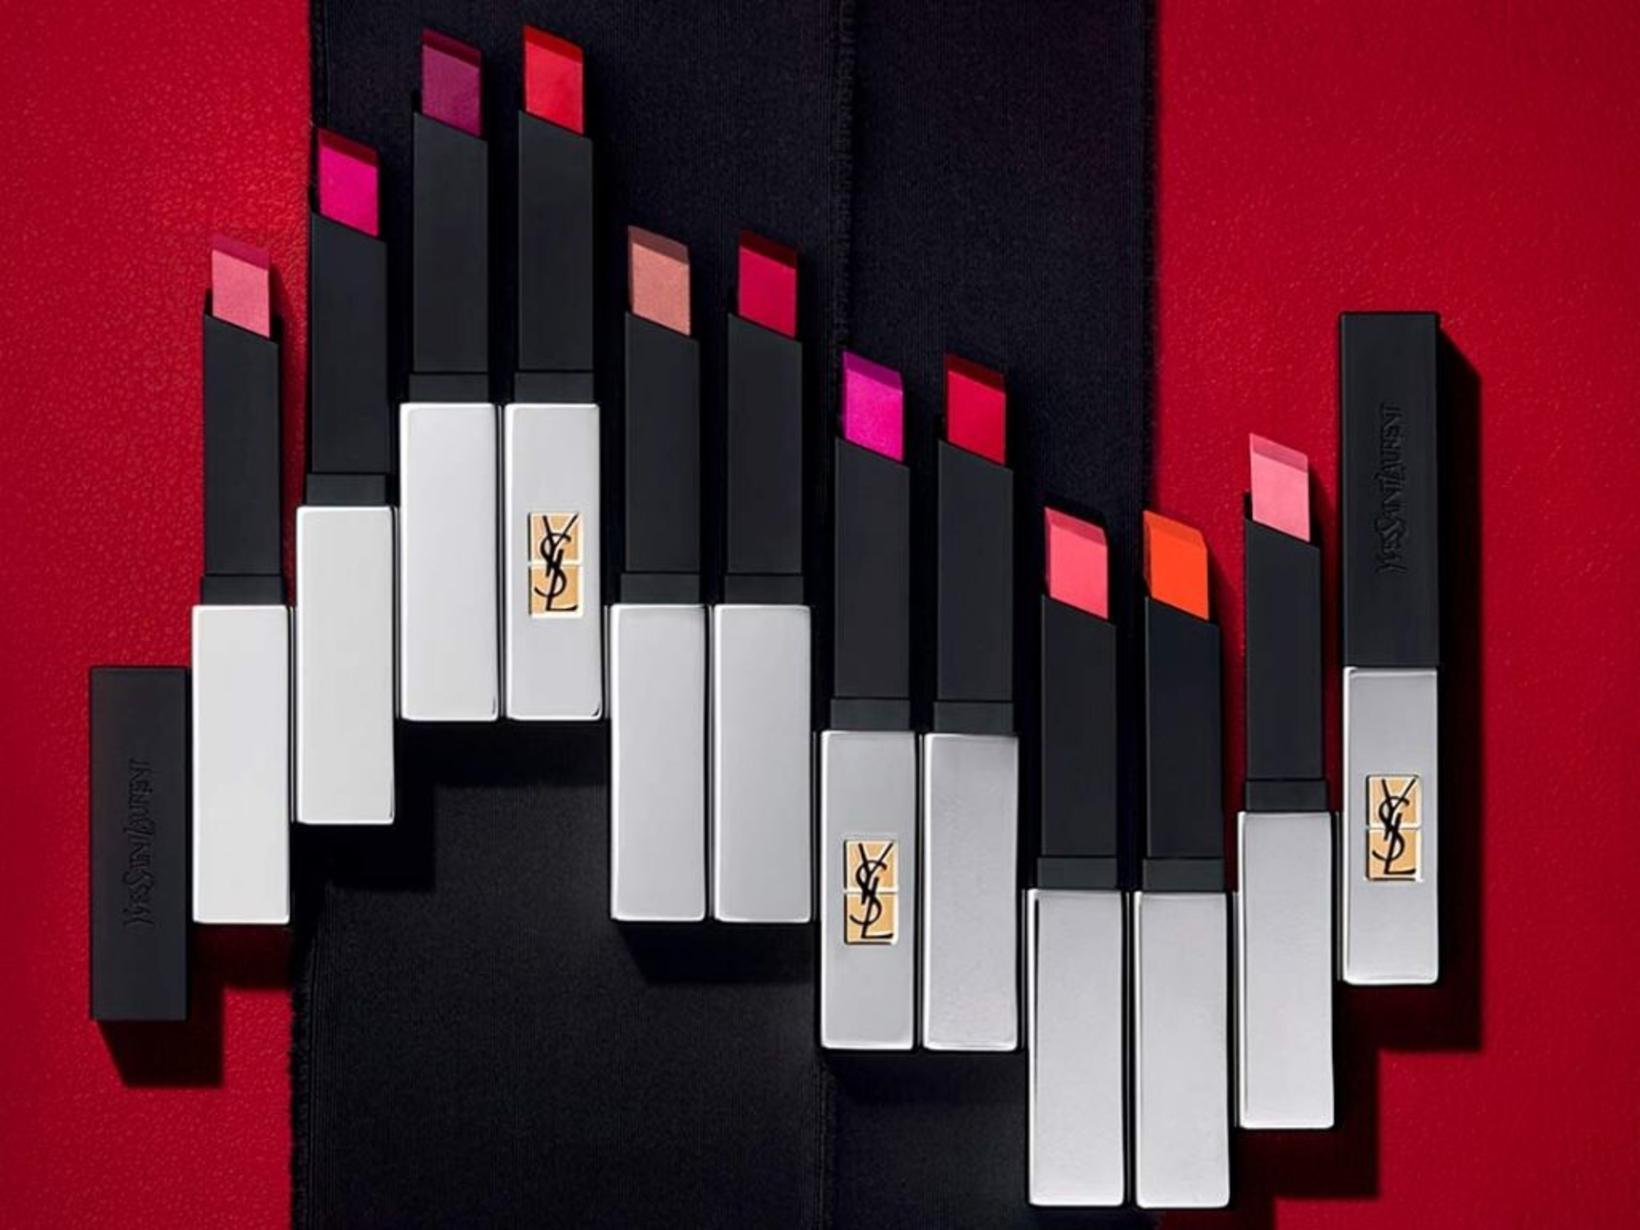 Yves Saint Laurent The Slim Sheer Matte Lipstick, 5.599 kr.